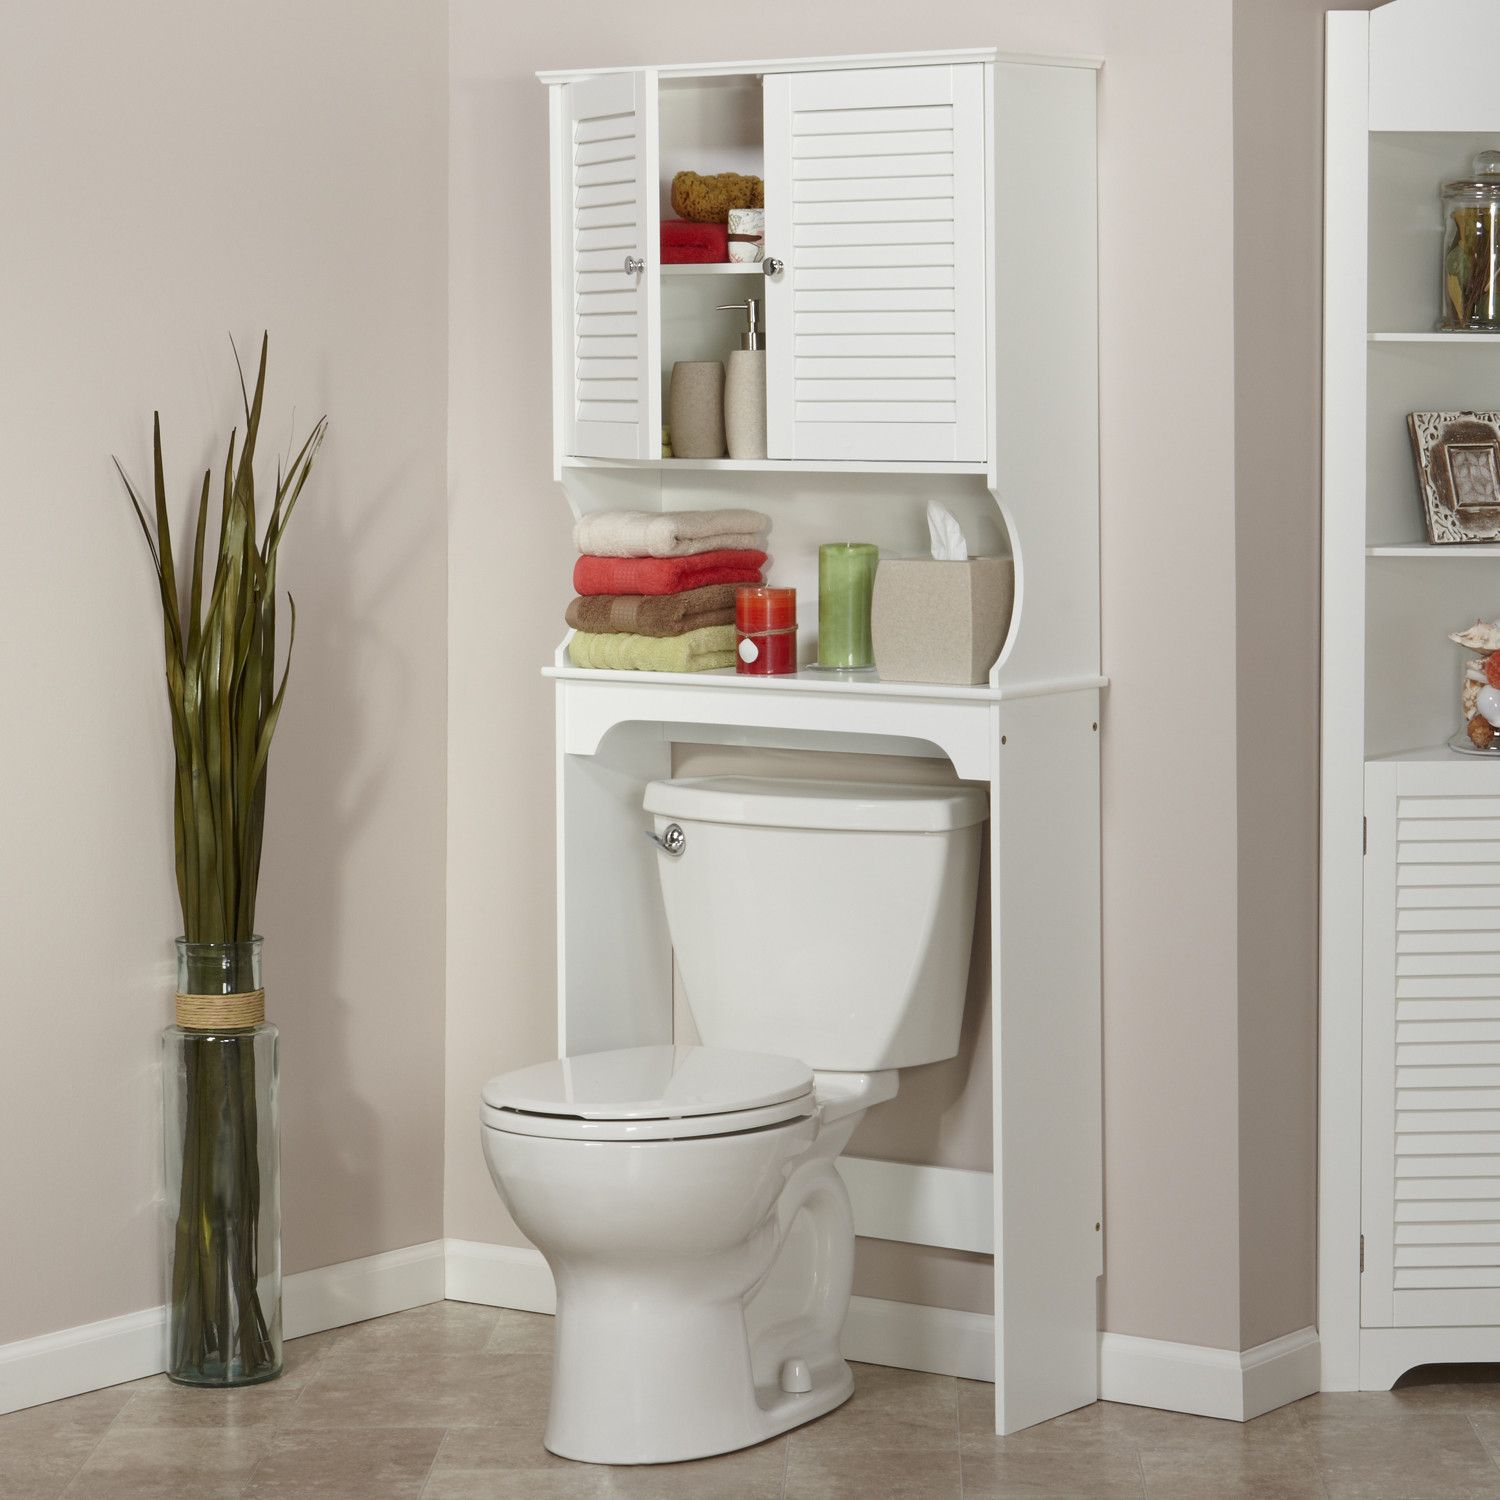 Cozy Lowes Tile Flooring With White Baseboard And Bathroom Etagere Toto Toilet For Modern Design Plus Small Also